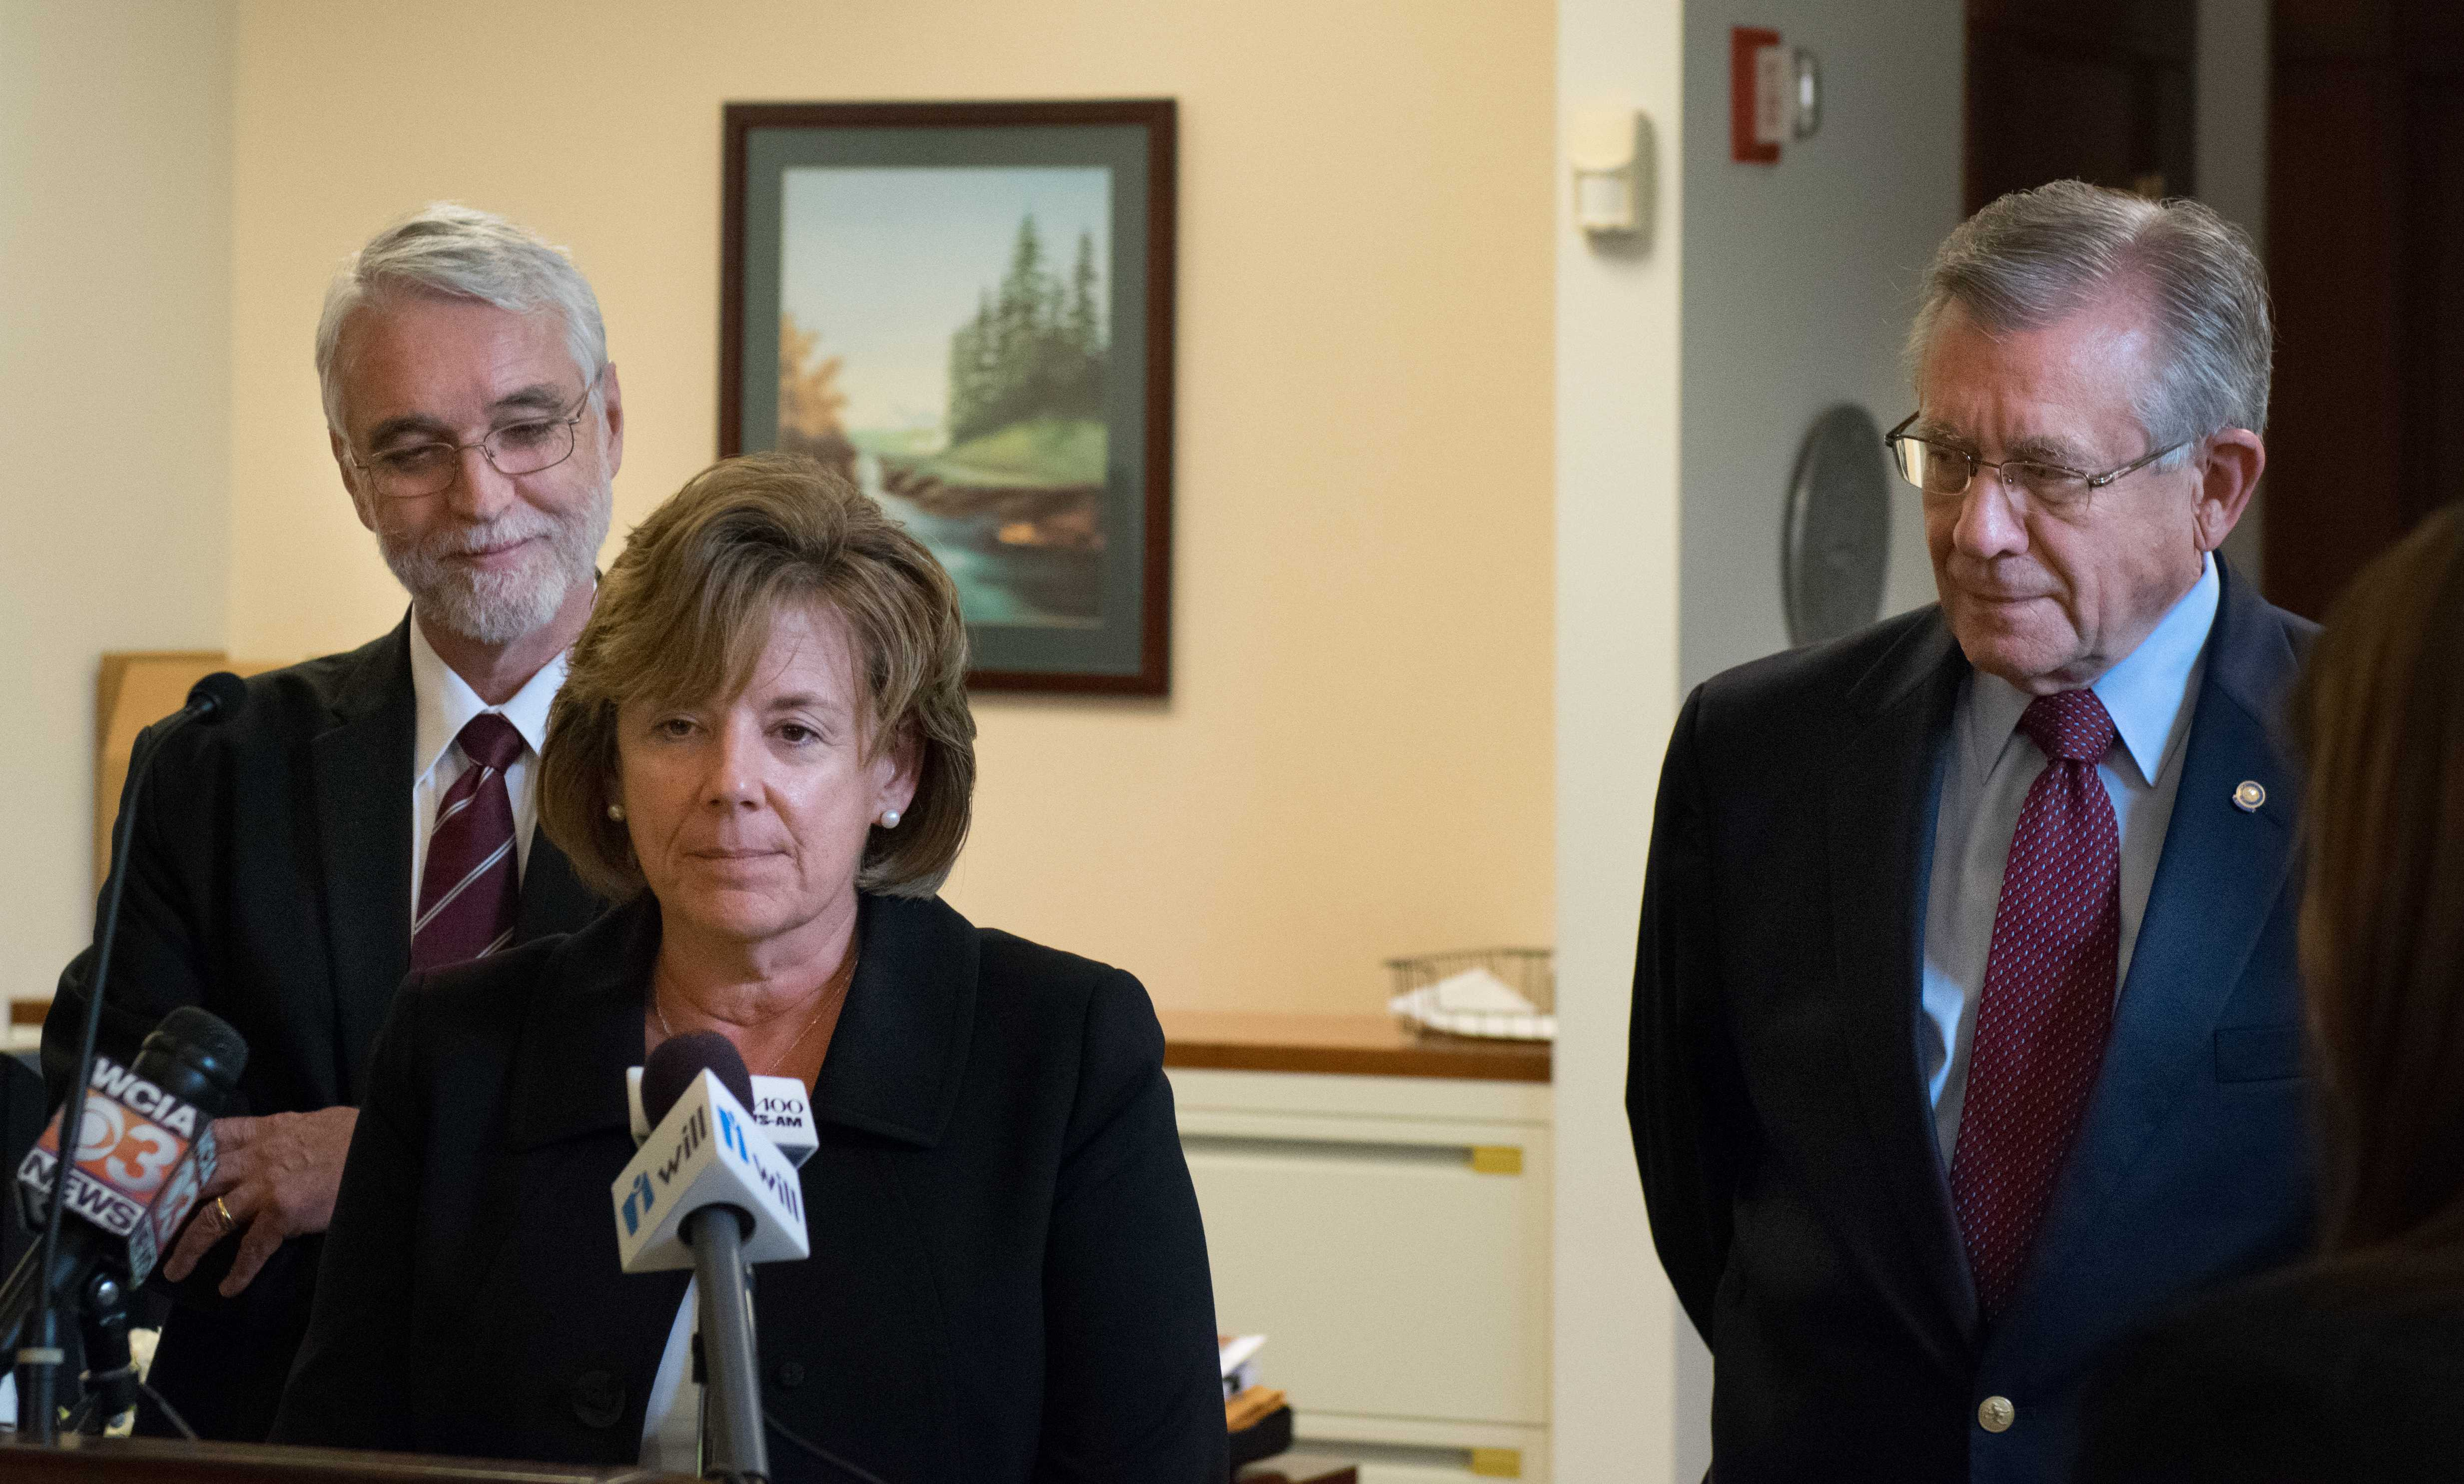 Interim Chancellor and Dean of the College of LAS Barbara Wilson speaks to media, alongside President Timothy Killeen (left) and Board Chairman Edward McMillan (right) following the Board of Trustee's Executive Committee on Wednesday.